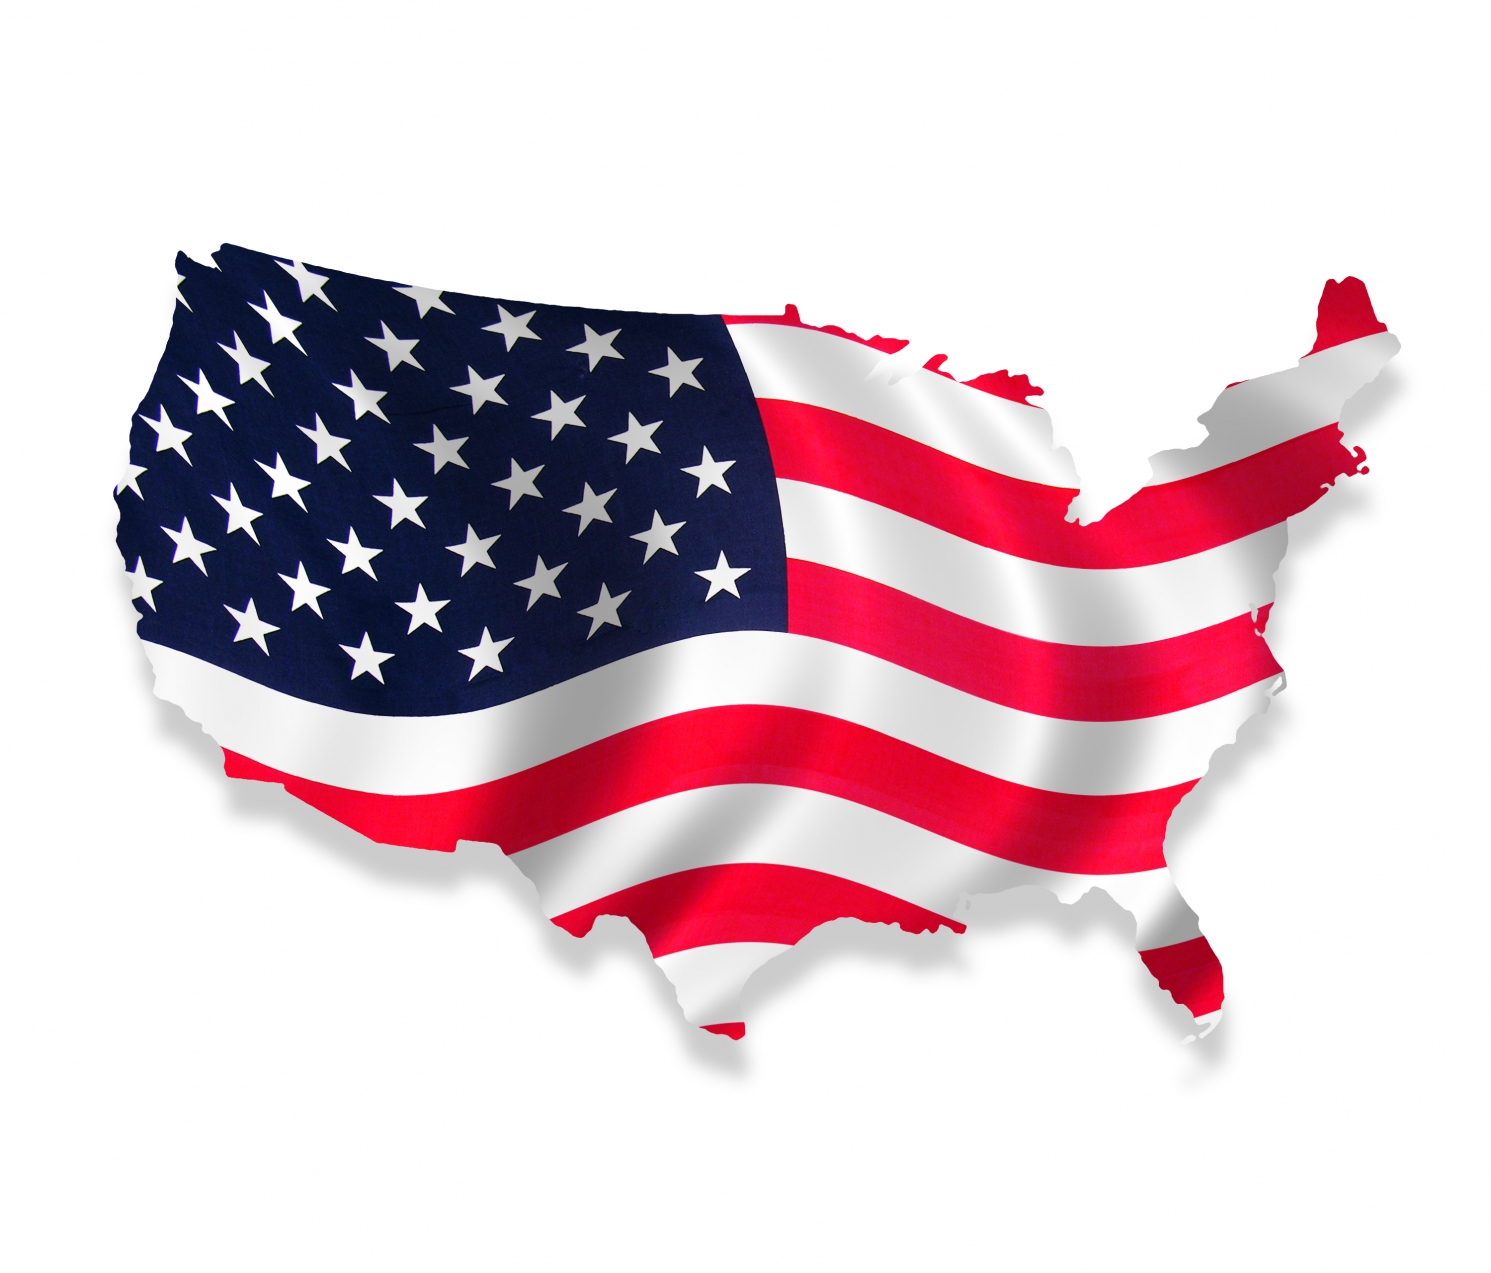 desktop hd pics of the american flag with country map outline